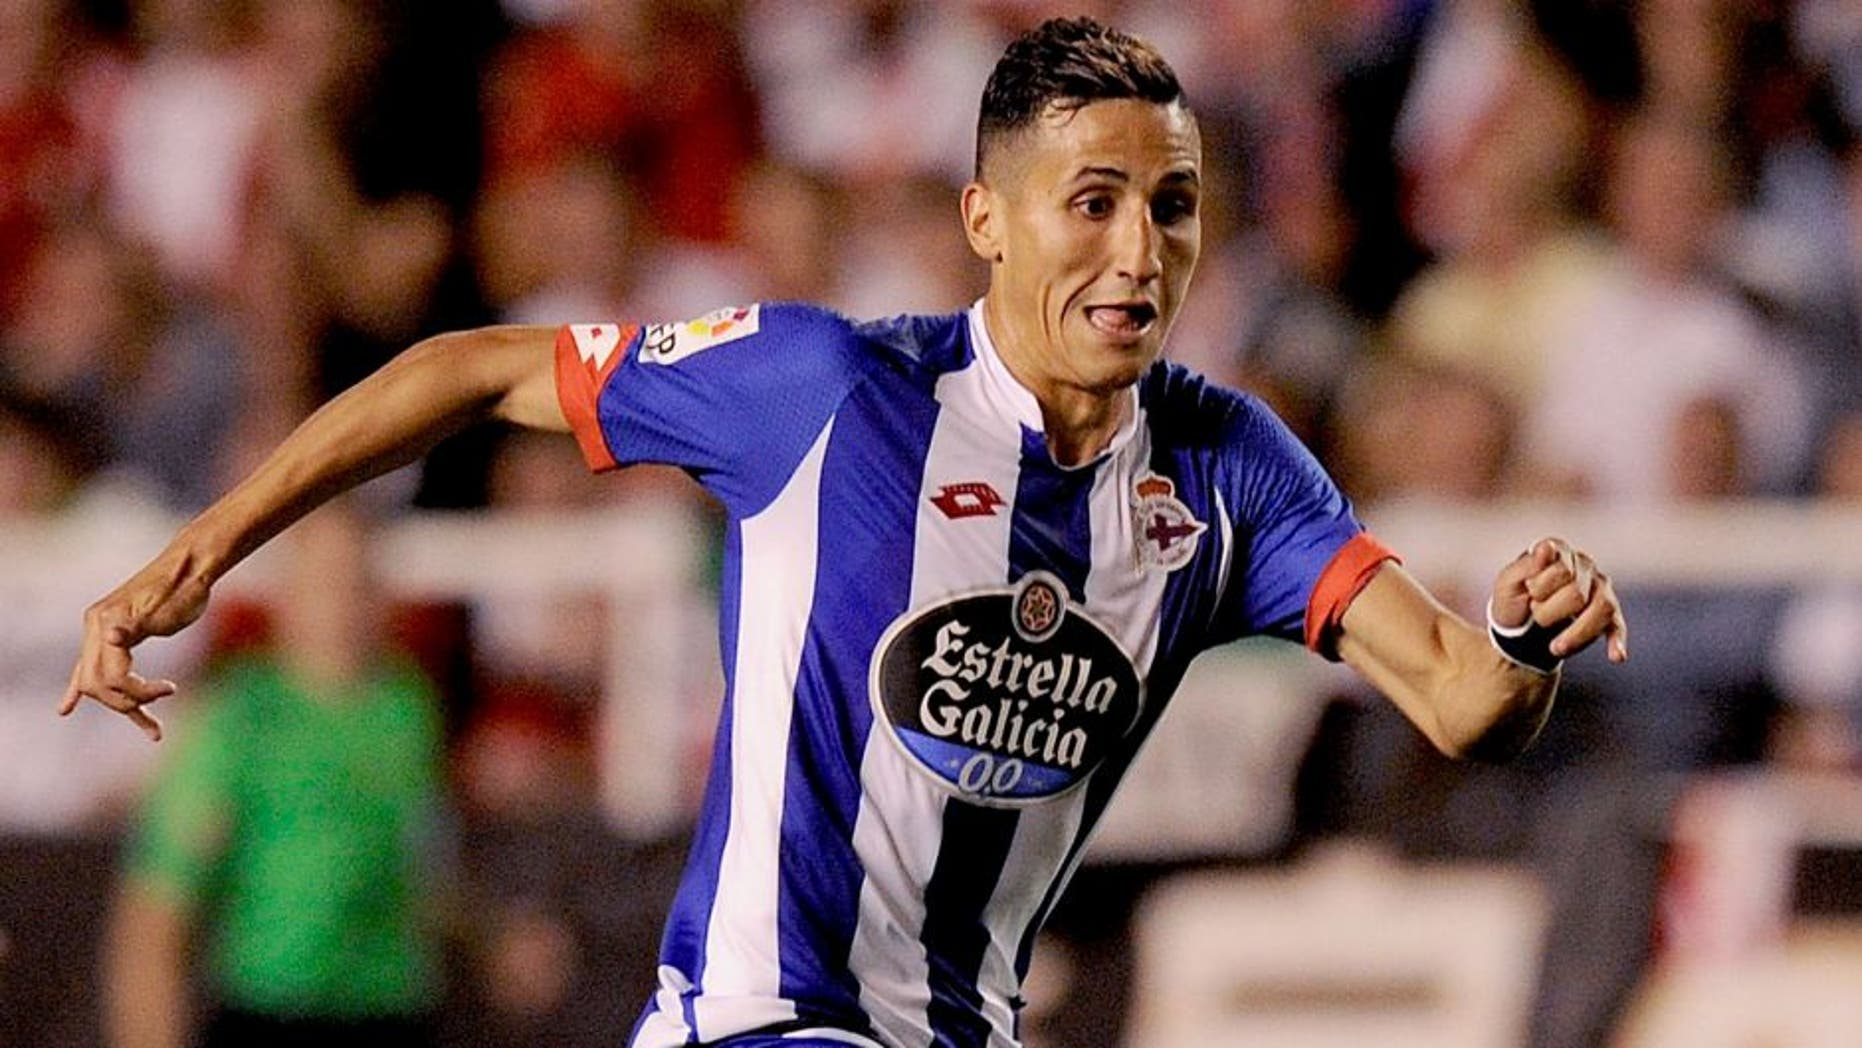 MADRID, SPAIN - SEPTEMBER 14: Faycal Fajr of RC Deportivo la Coruna in action during the La Liga match between Rayo Vallecano and RC Deportivo La Coruna at Estadio Teresa Rivero on September 14, 2015 in Madrid, Spain. (Photo by Denis Doyle/Getty Images)